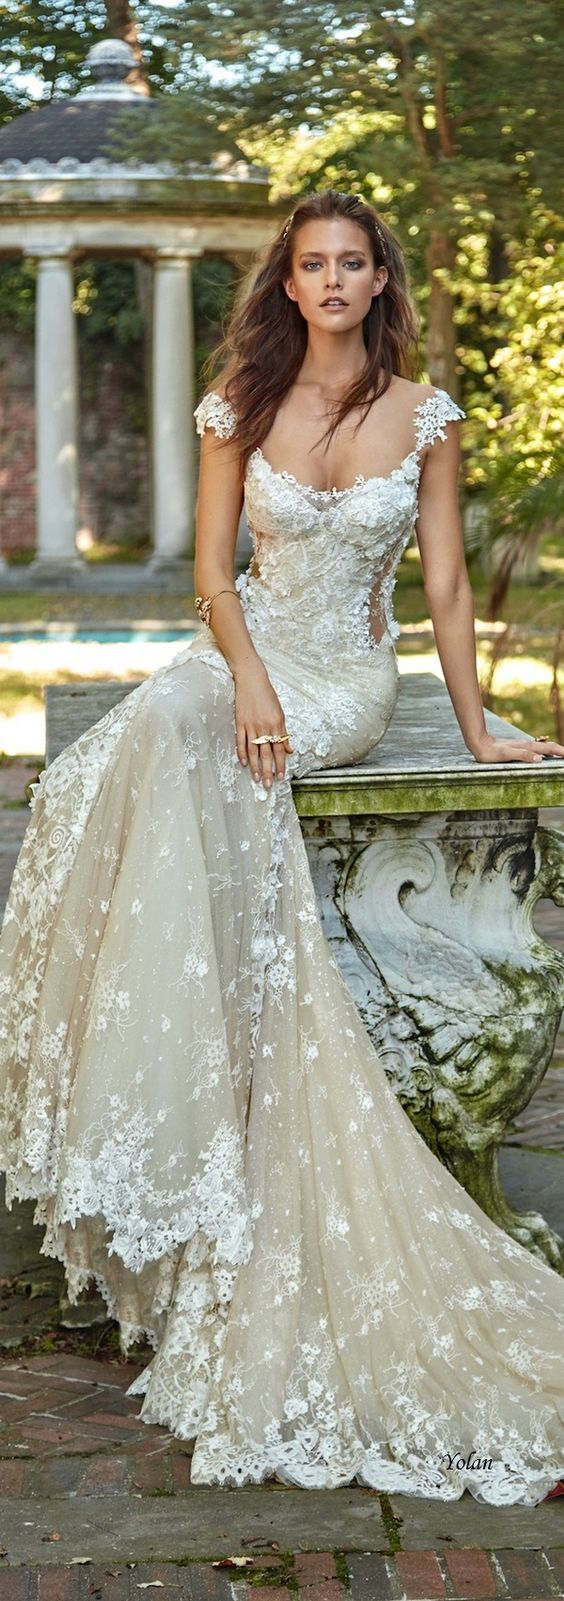 best novias images on pinterest